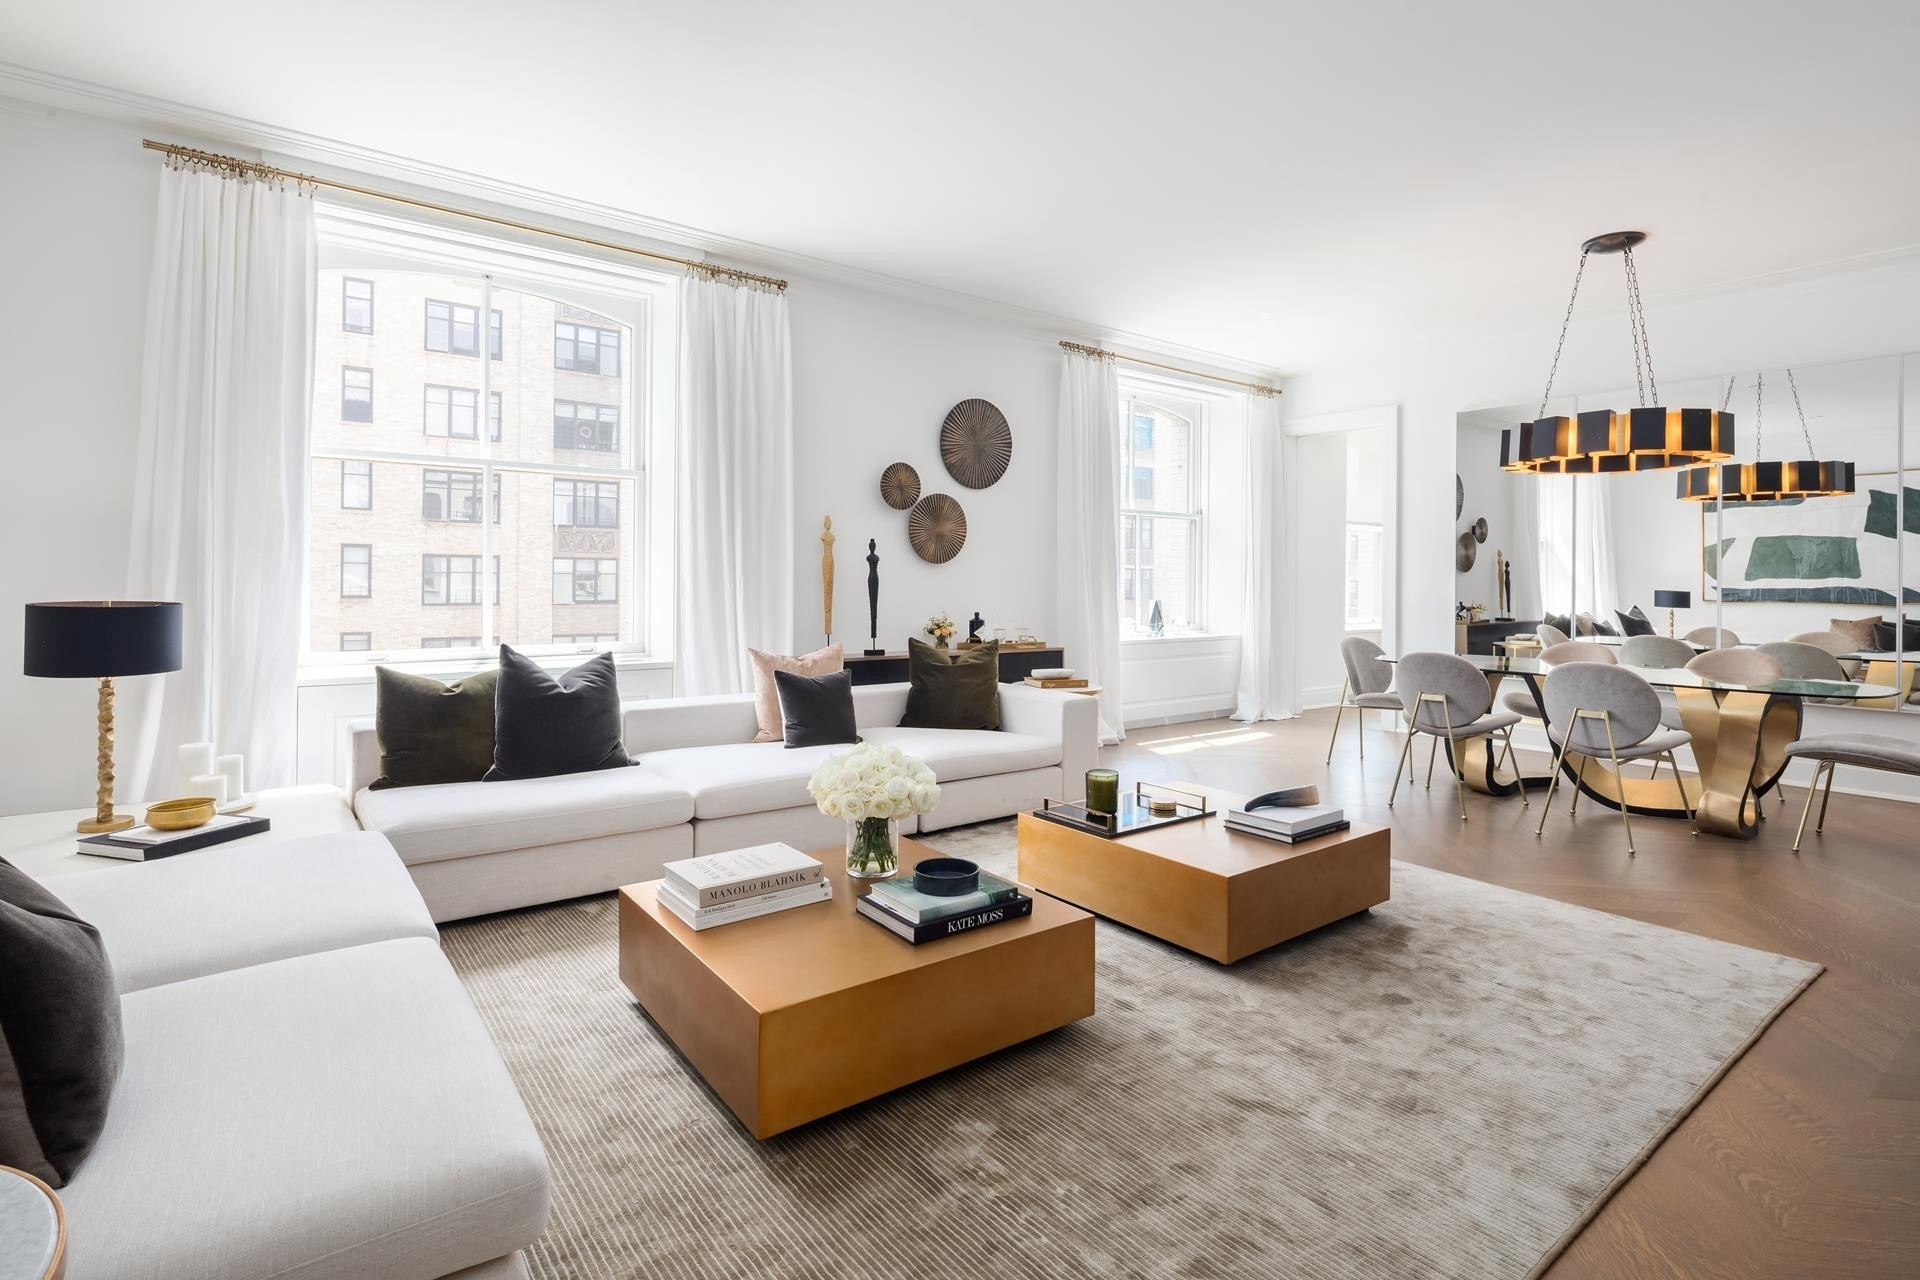 Condominium at The Belnord, 225 West 86th St, 812 Upper West Side, New York